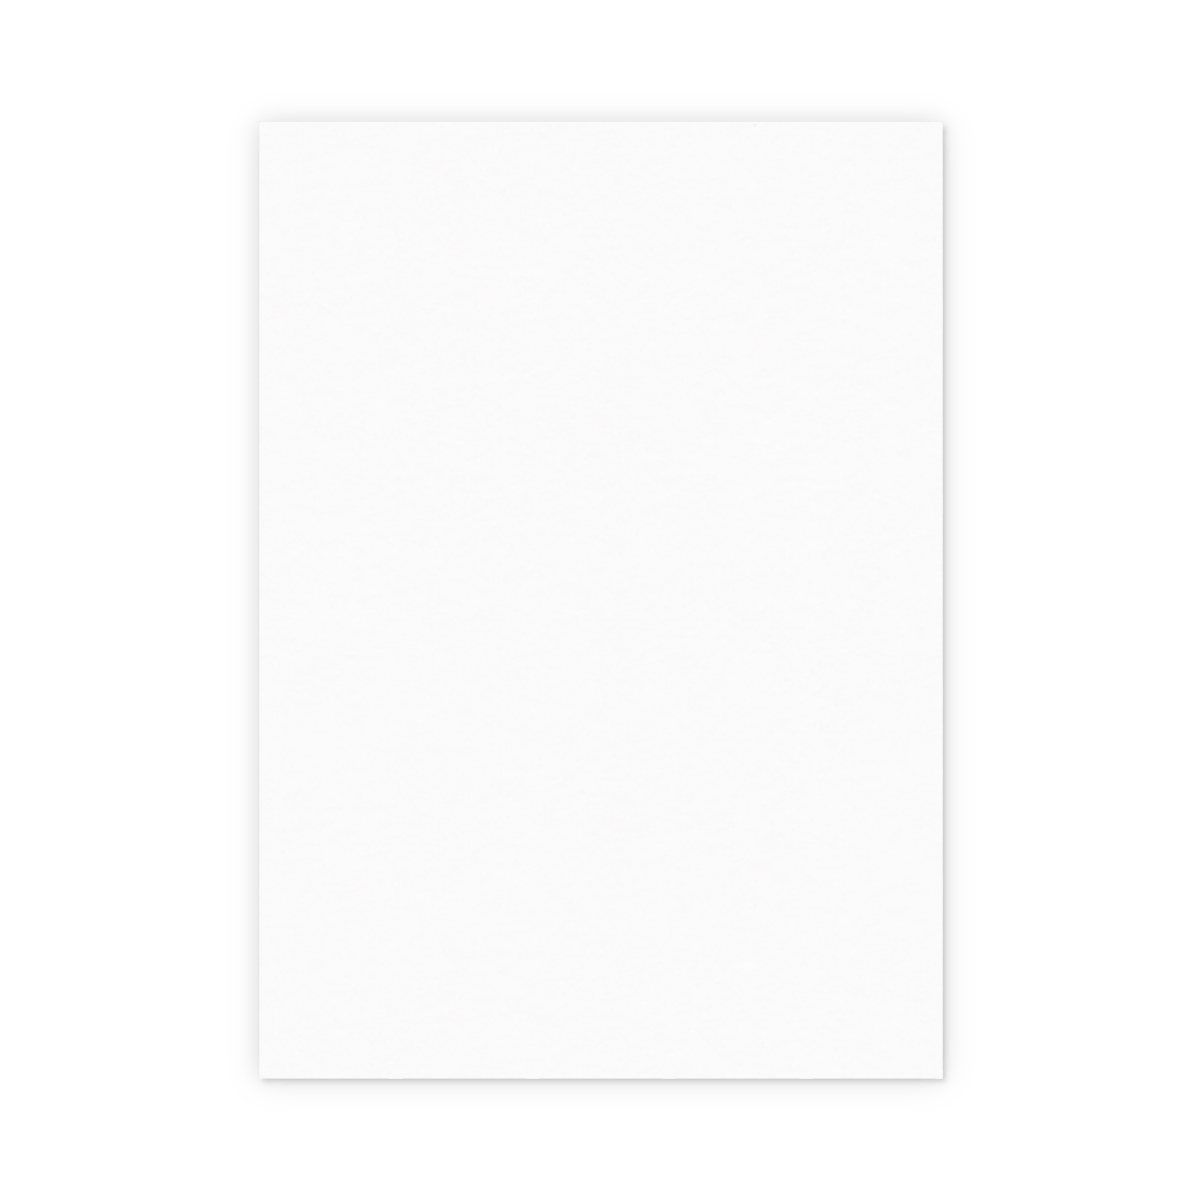 Https%3a%2f%2fwww.papier.com%2fproduct image%2f34656%2f4%2fshapes colours ten 8668 arriere 1552335509.png?ixlib=rb 1.1